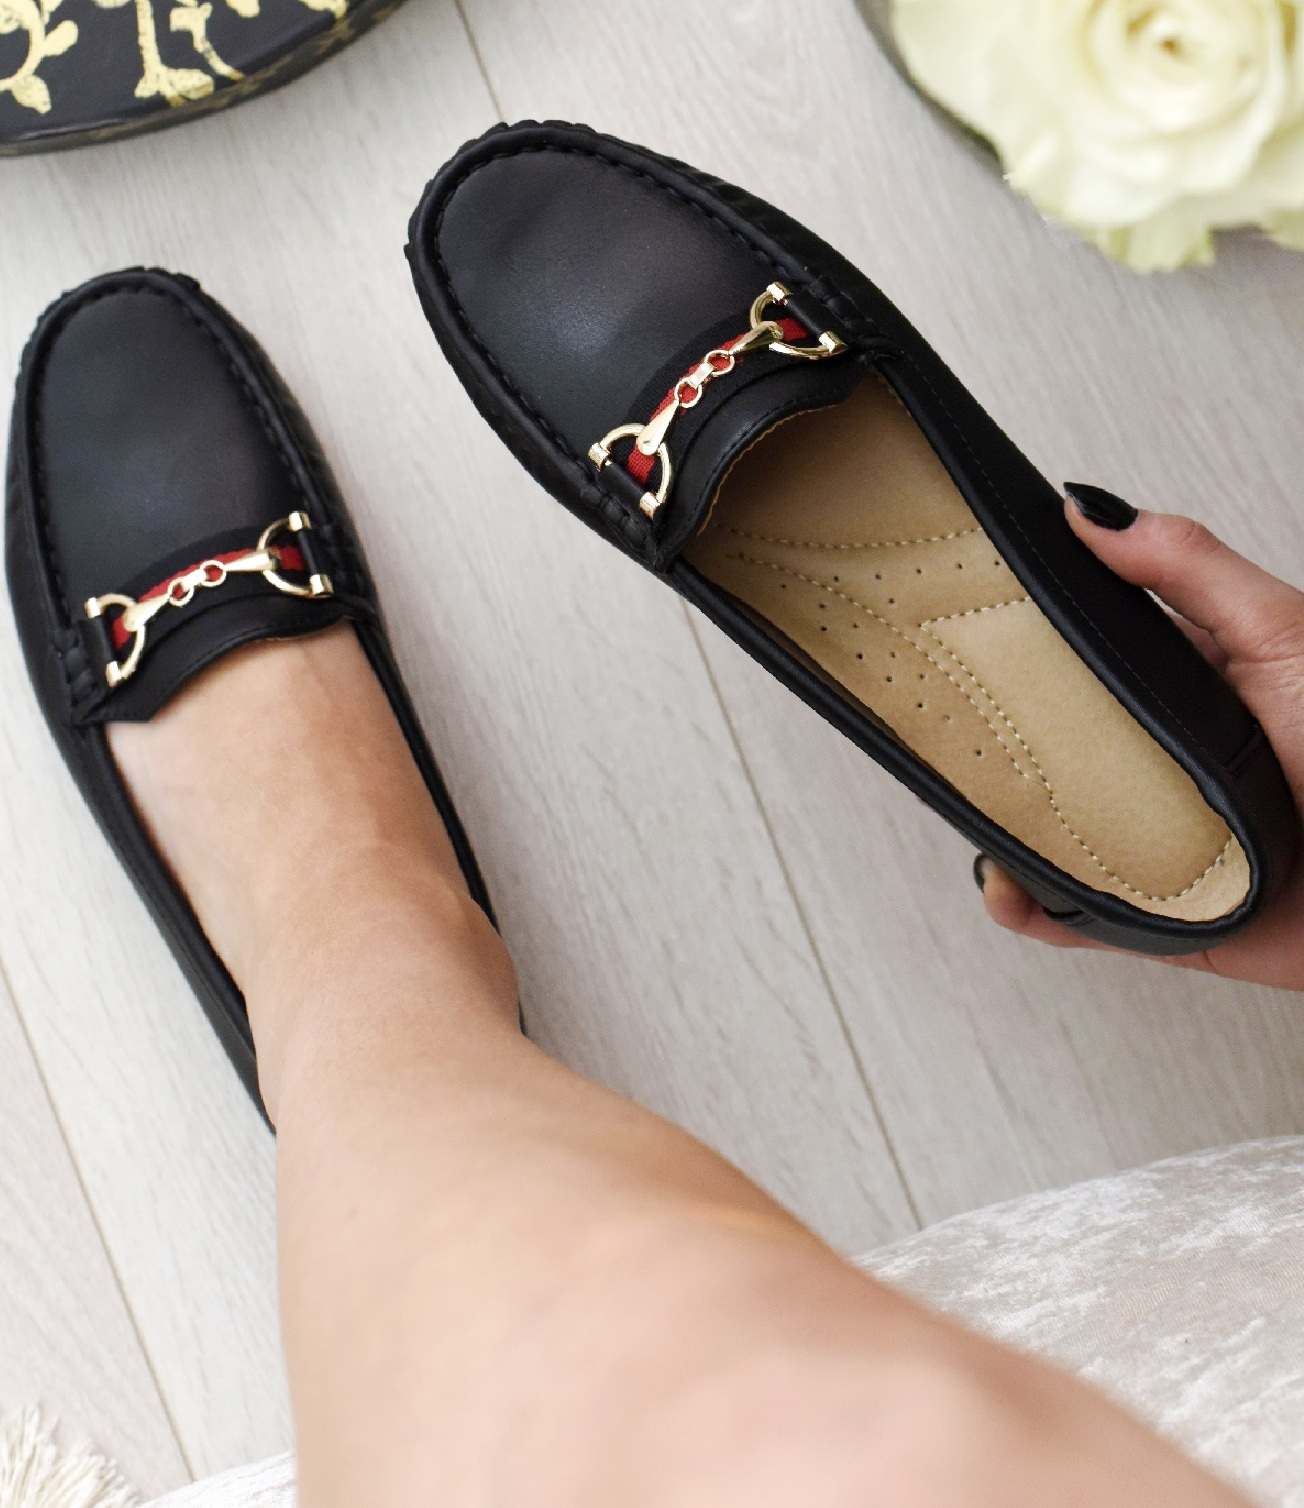 LADIES-WOMENS-FLATS-SLIP-ON-LOAFERS-WORK-OFFICE-BUCKLE-PUMPS-COMFY-SHOES-SZ-3-8 thumbnail 4